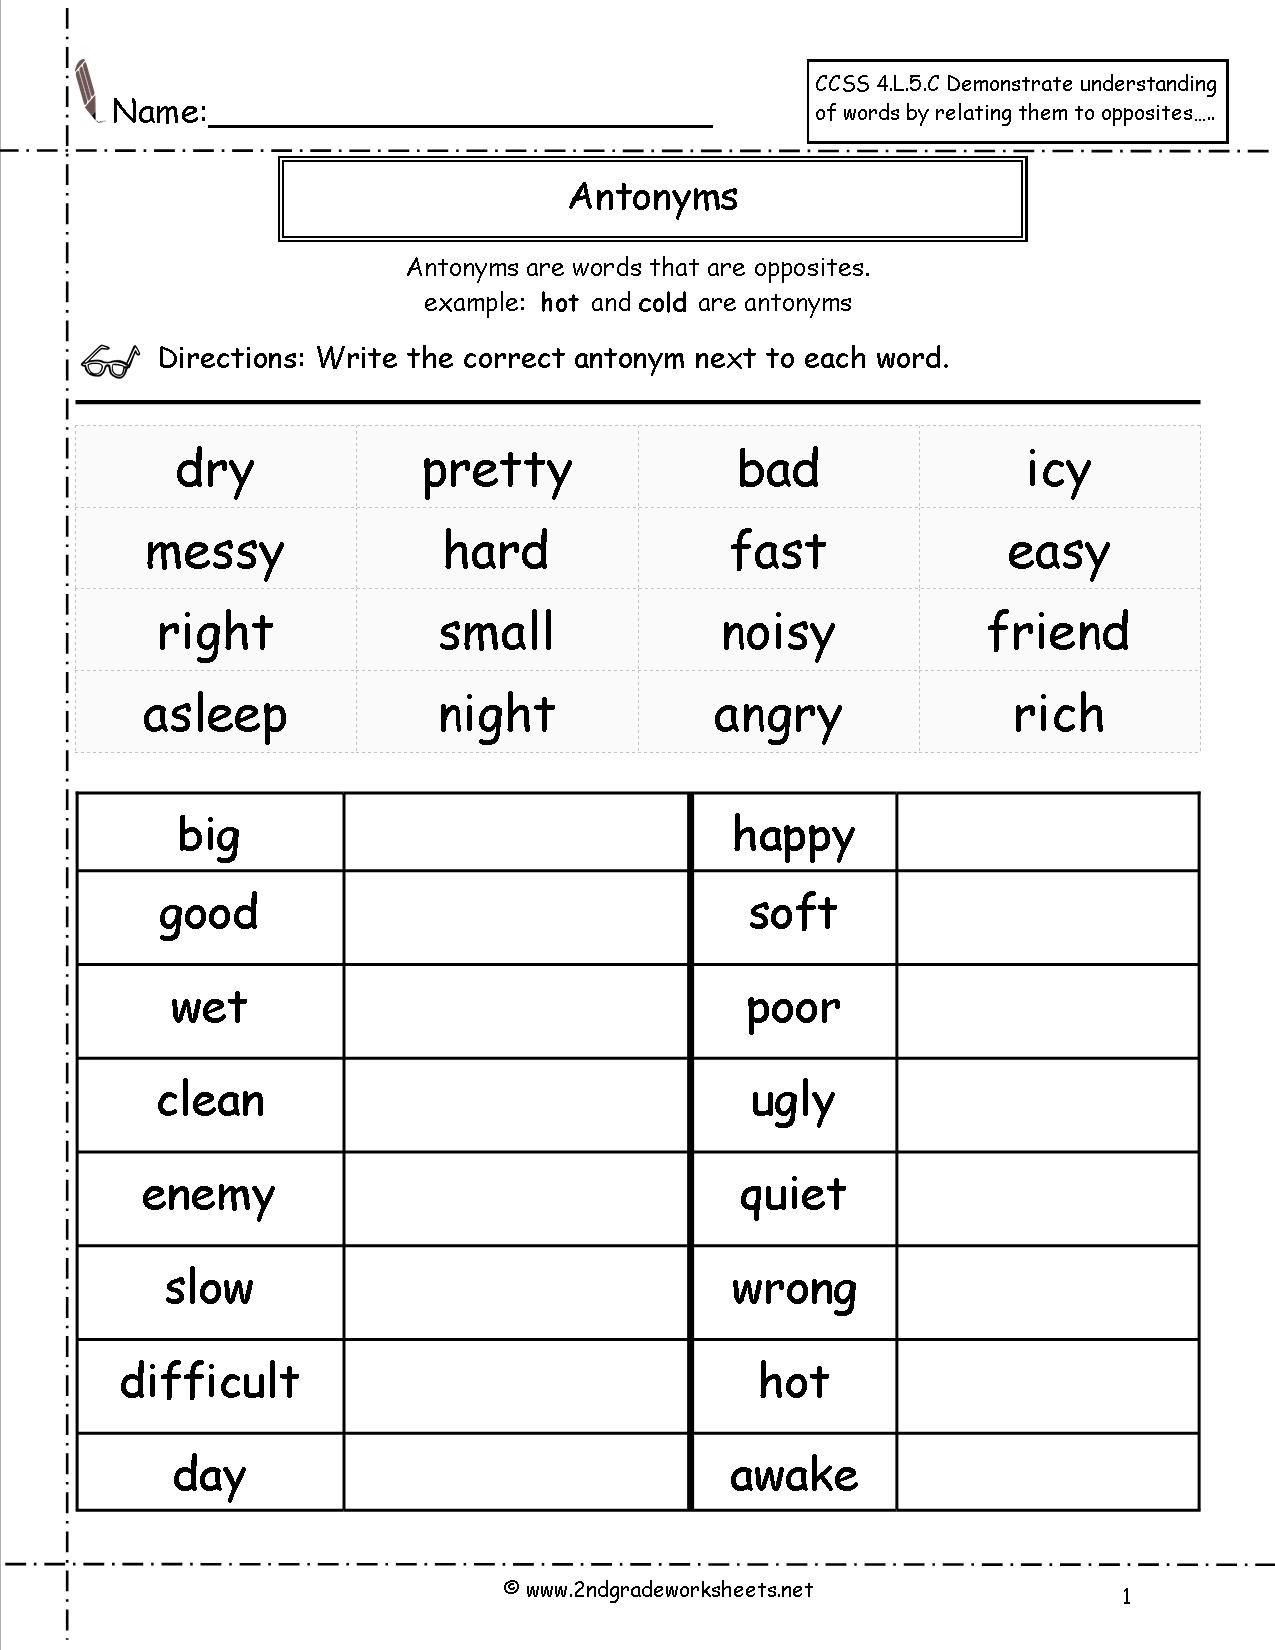 Antonyms Worksheets 3rd Grade Synonyms and Antonyms Worksheets